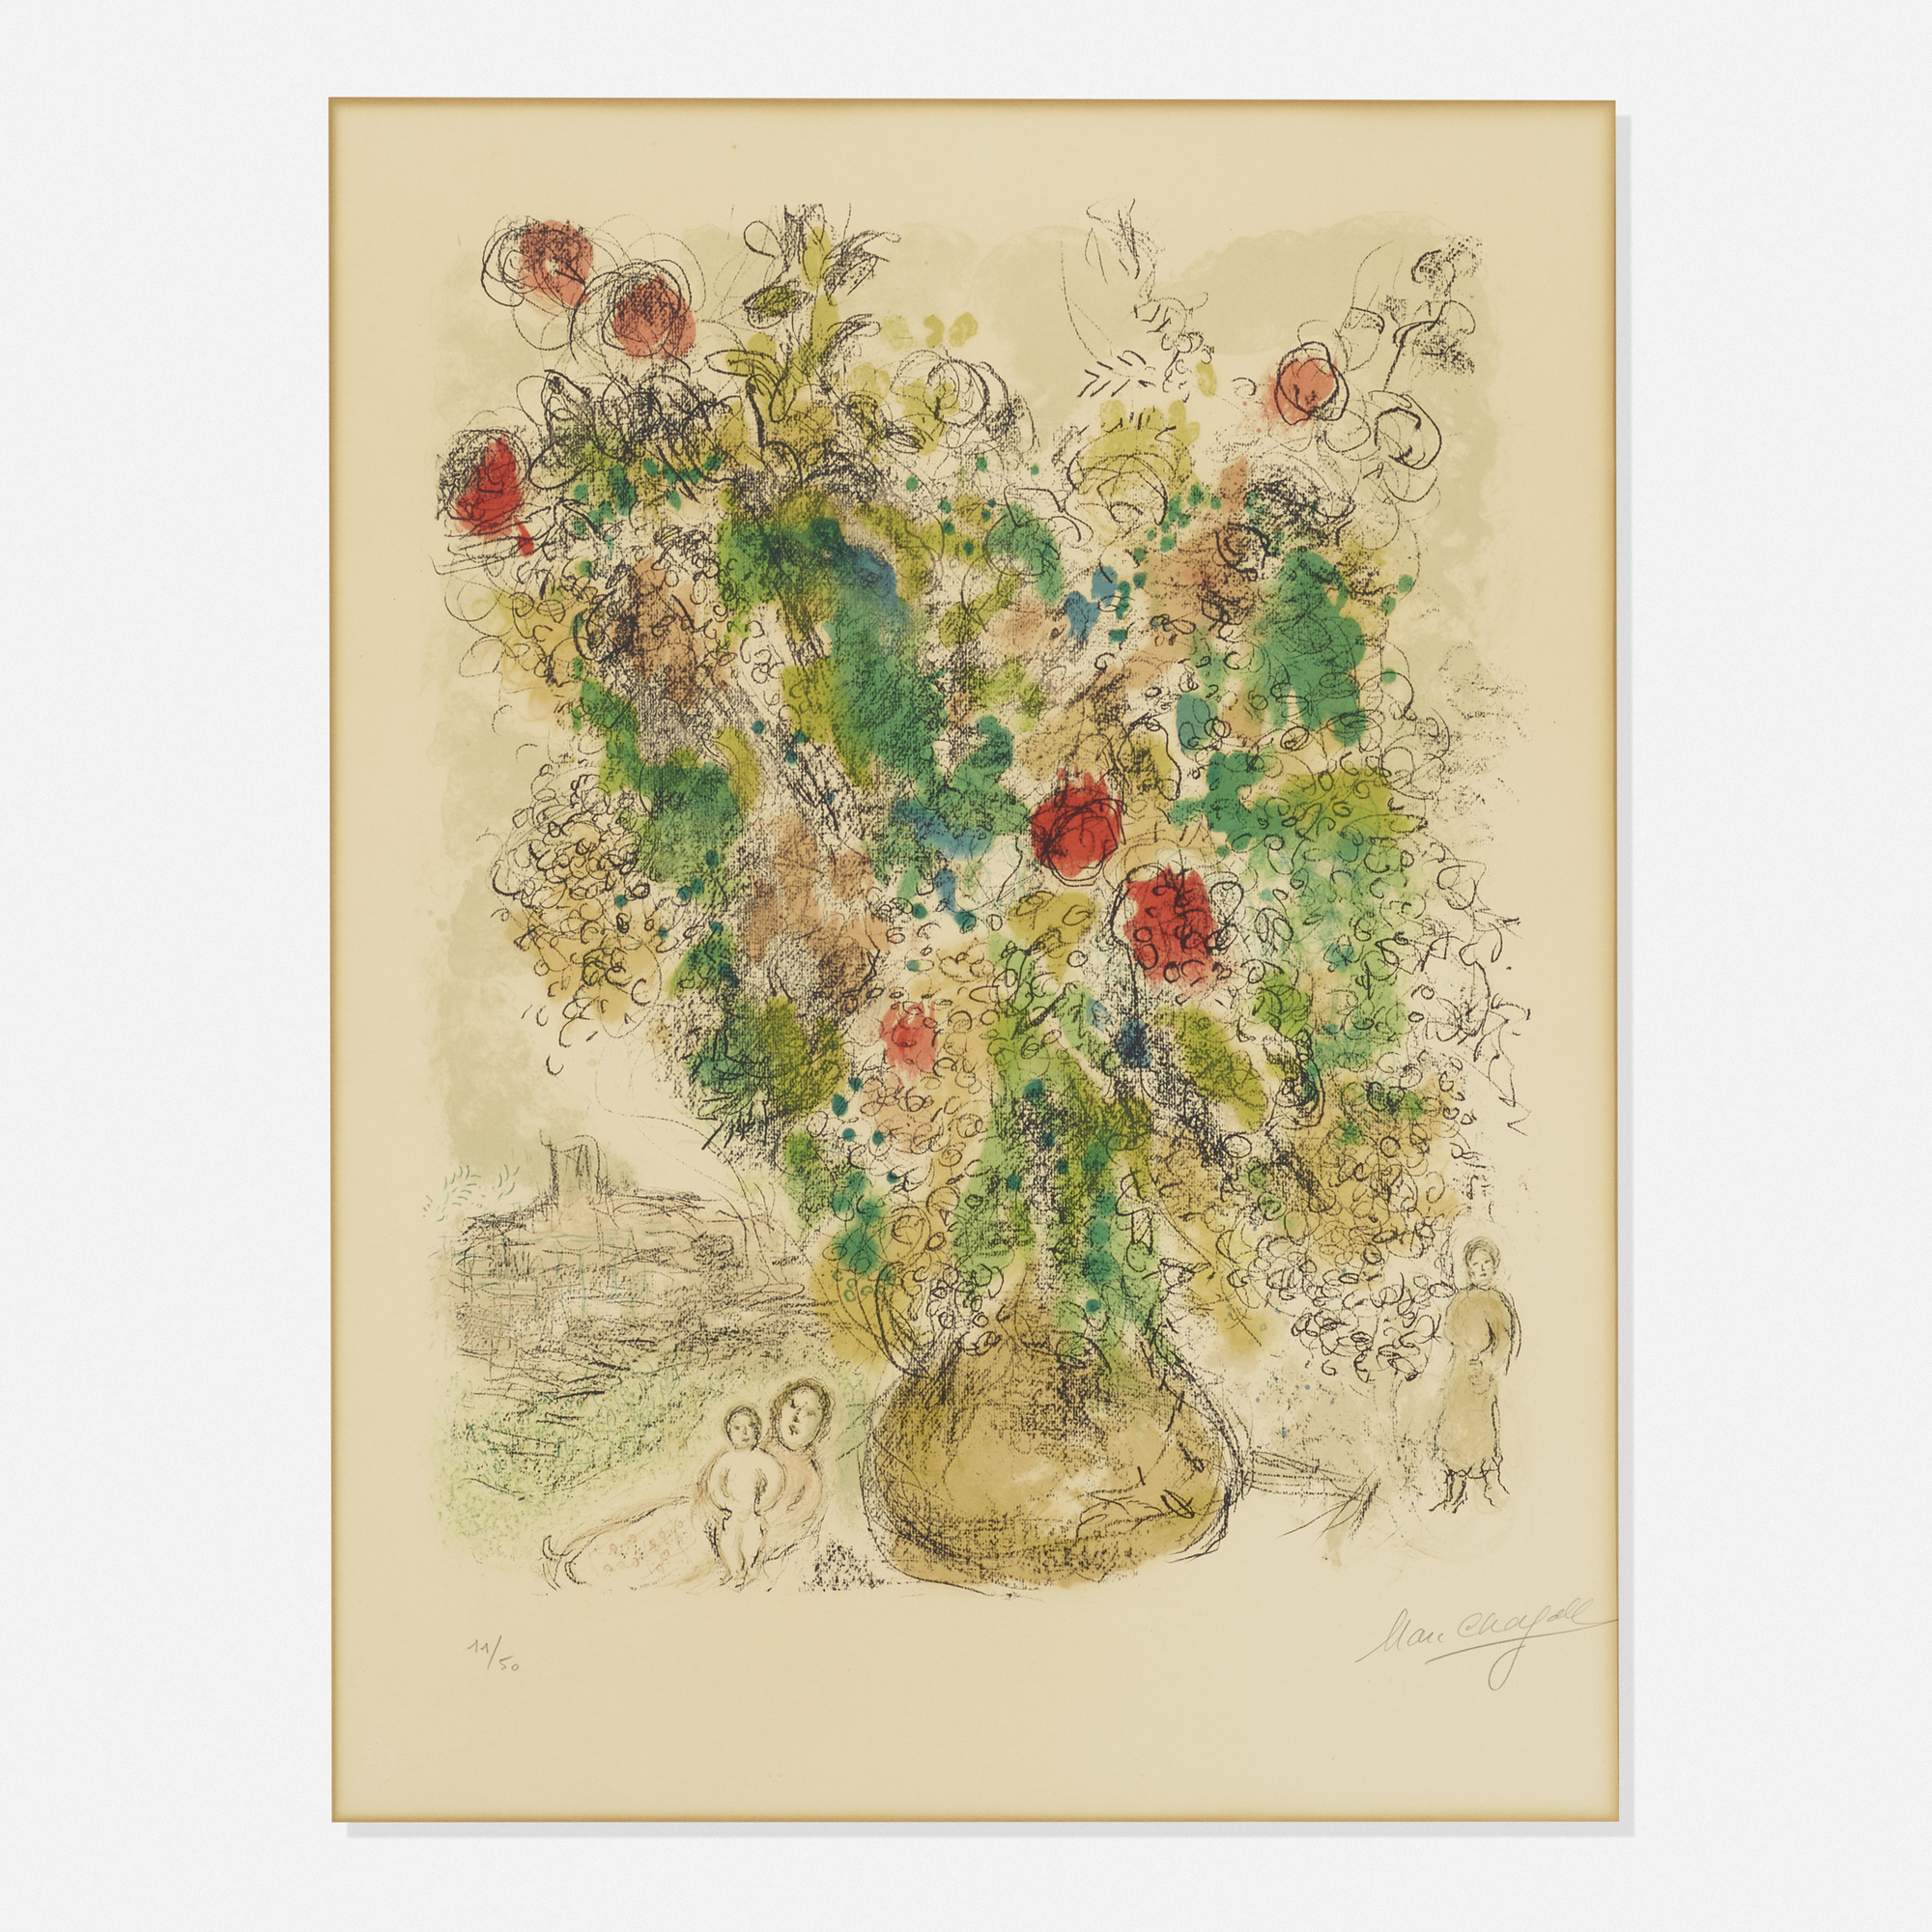 194: Marc Chagall / Roses and Mimosa (1 of 2)